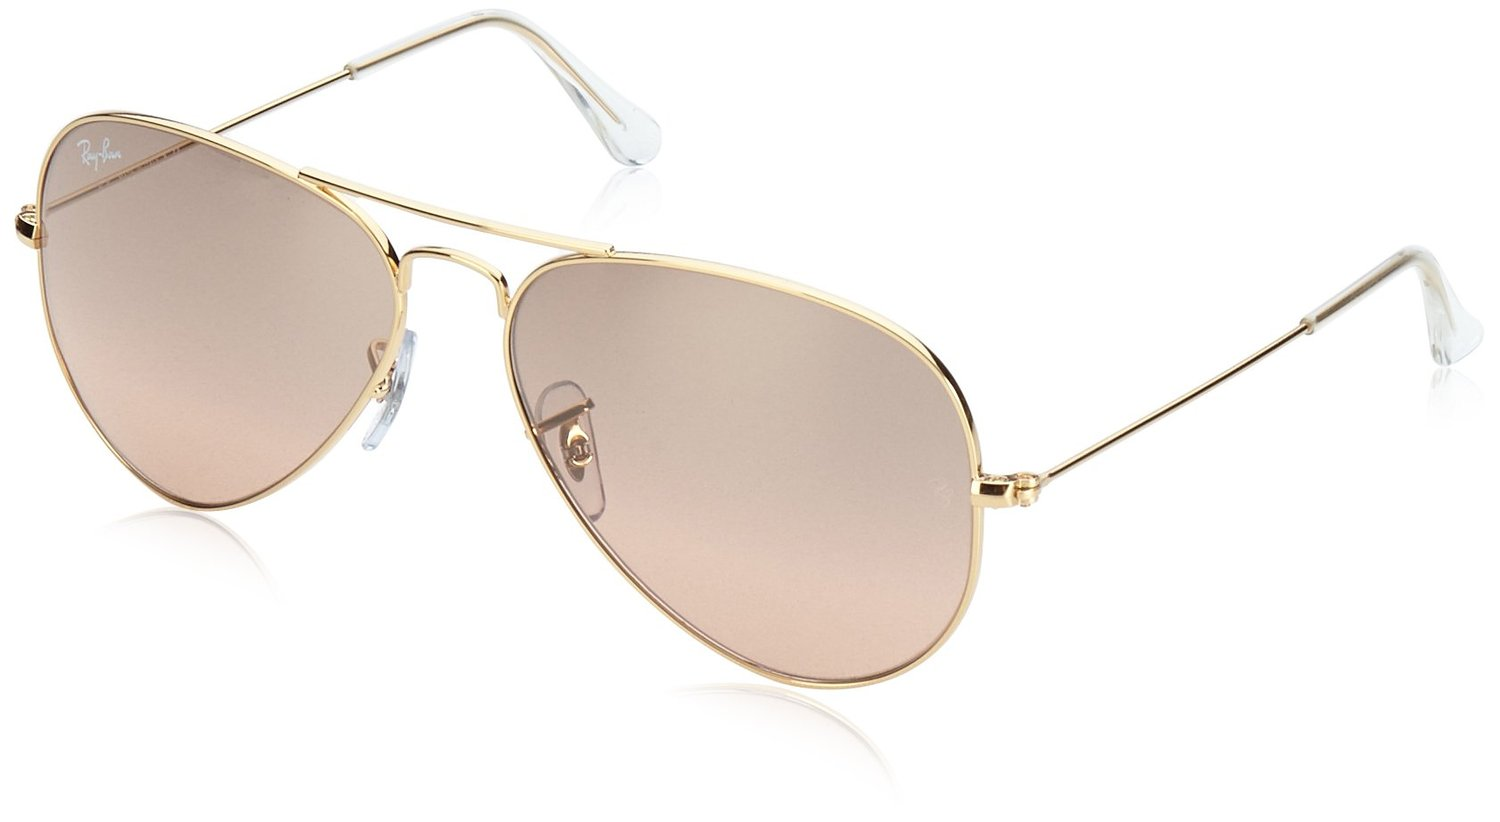 Ray-Ban Men's Aviator Large Metal Aviator Sunglasses, Arista,Crystal Brown & Pink Silver Mirror, 55 mm: Ray-Ban